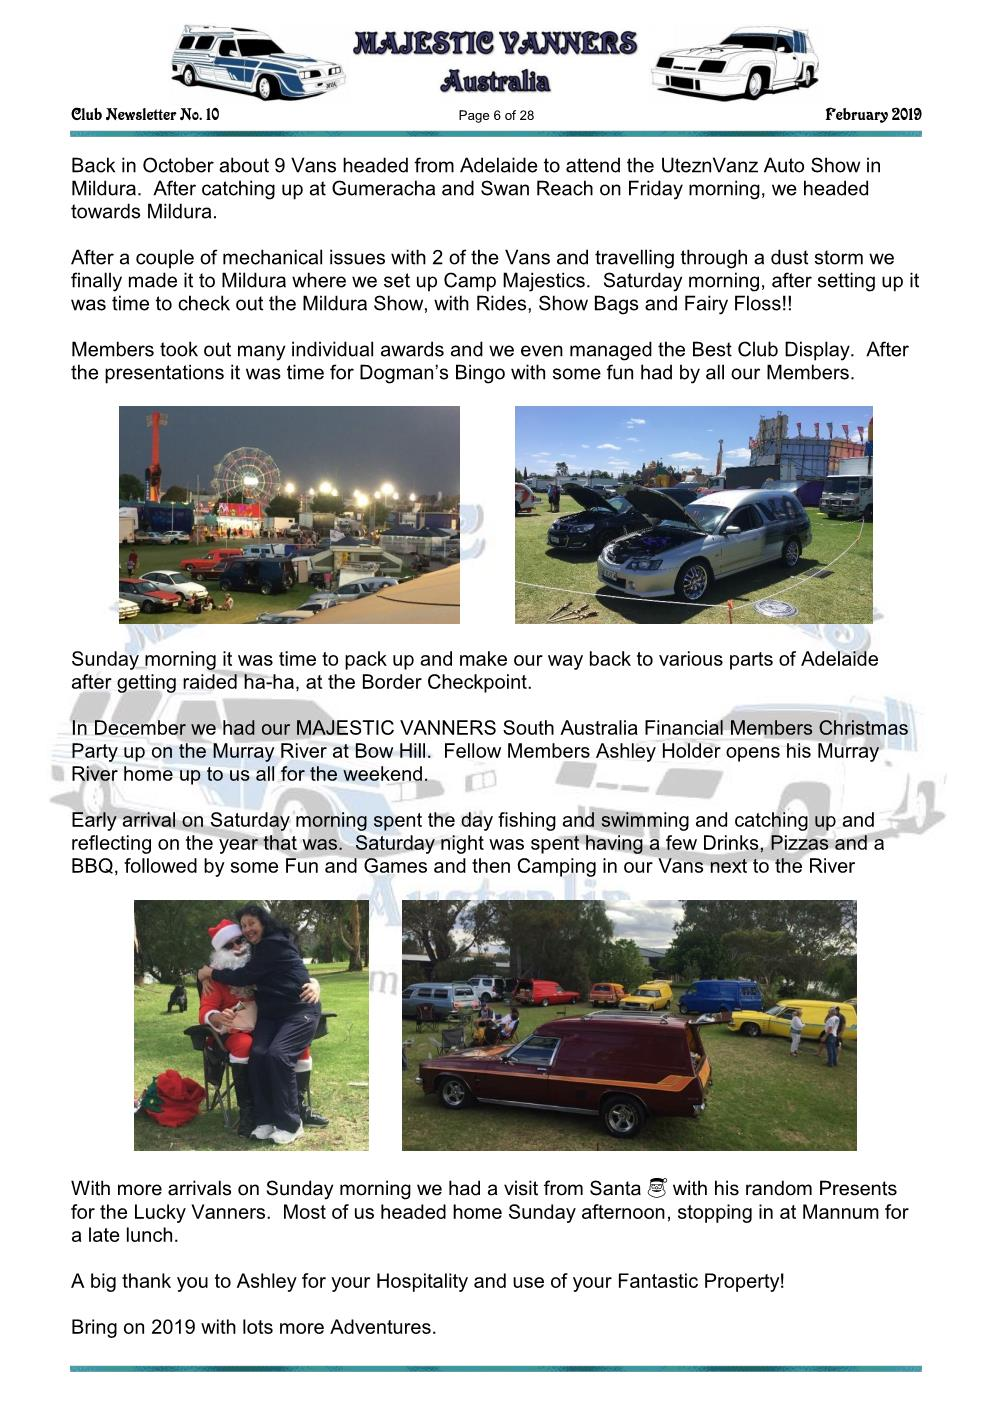 MAJESTIC VANNERS Newsletter Issue No: 10 February 2019 Mv_new15